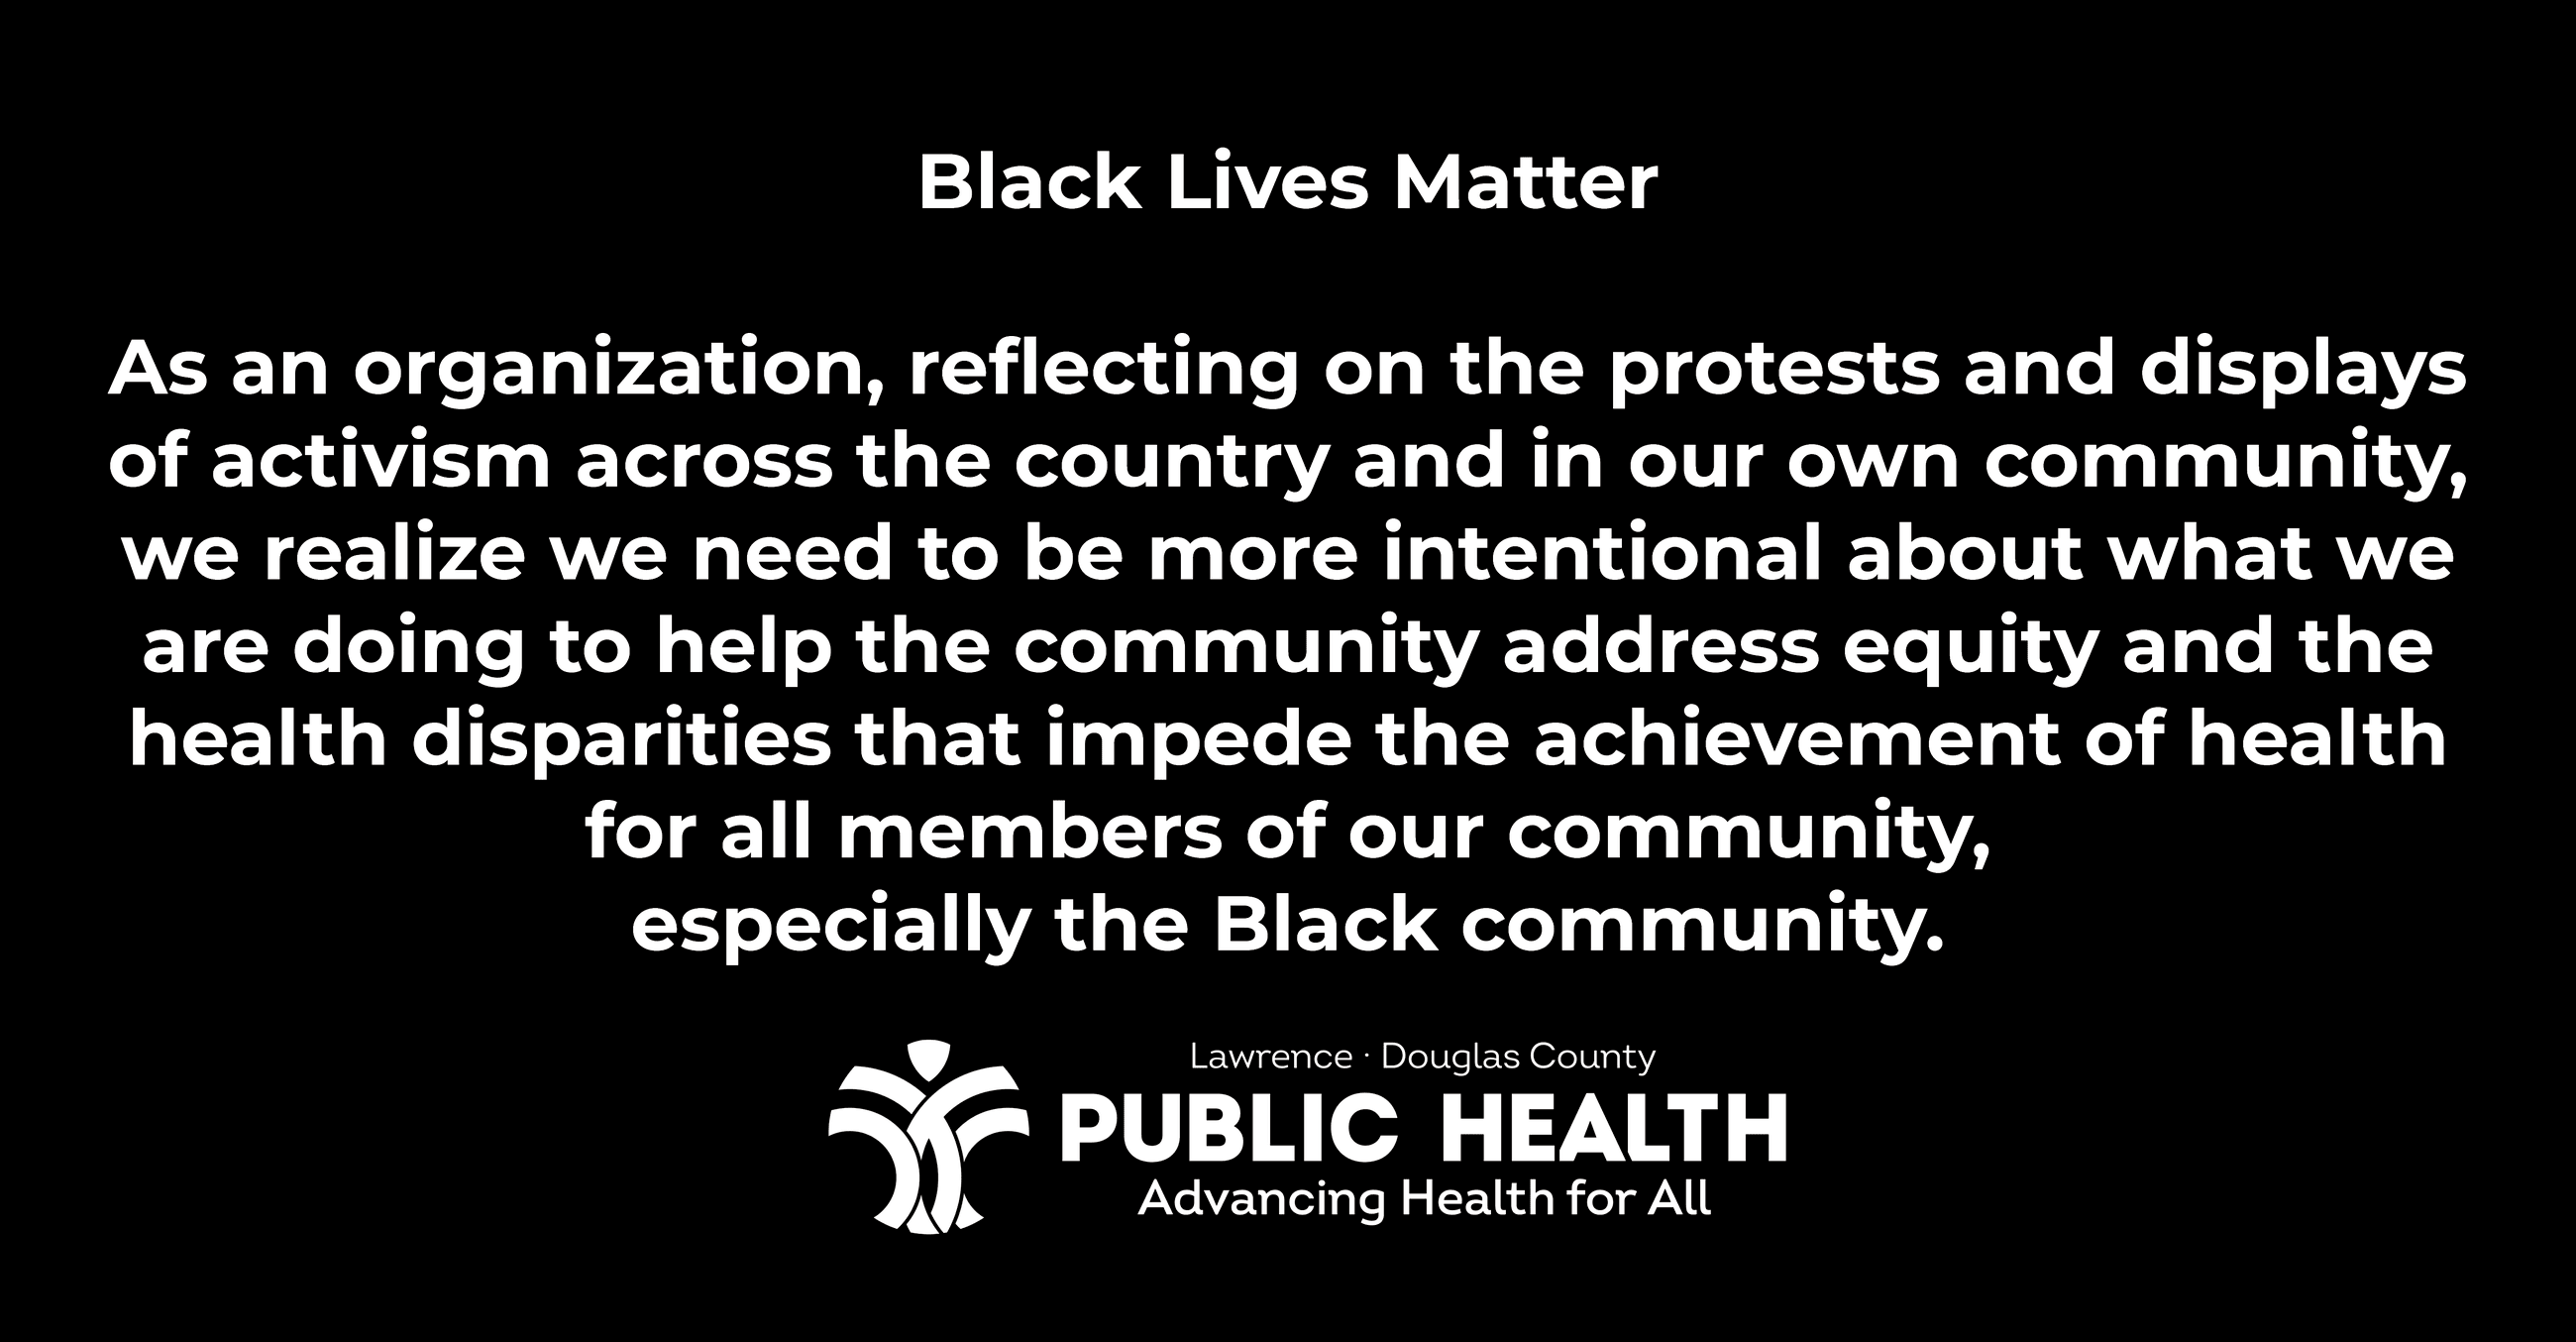 Statement on Racism and Action to Pursue Health Equity